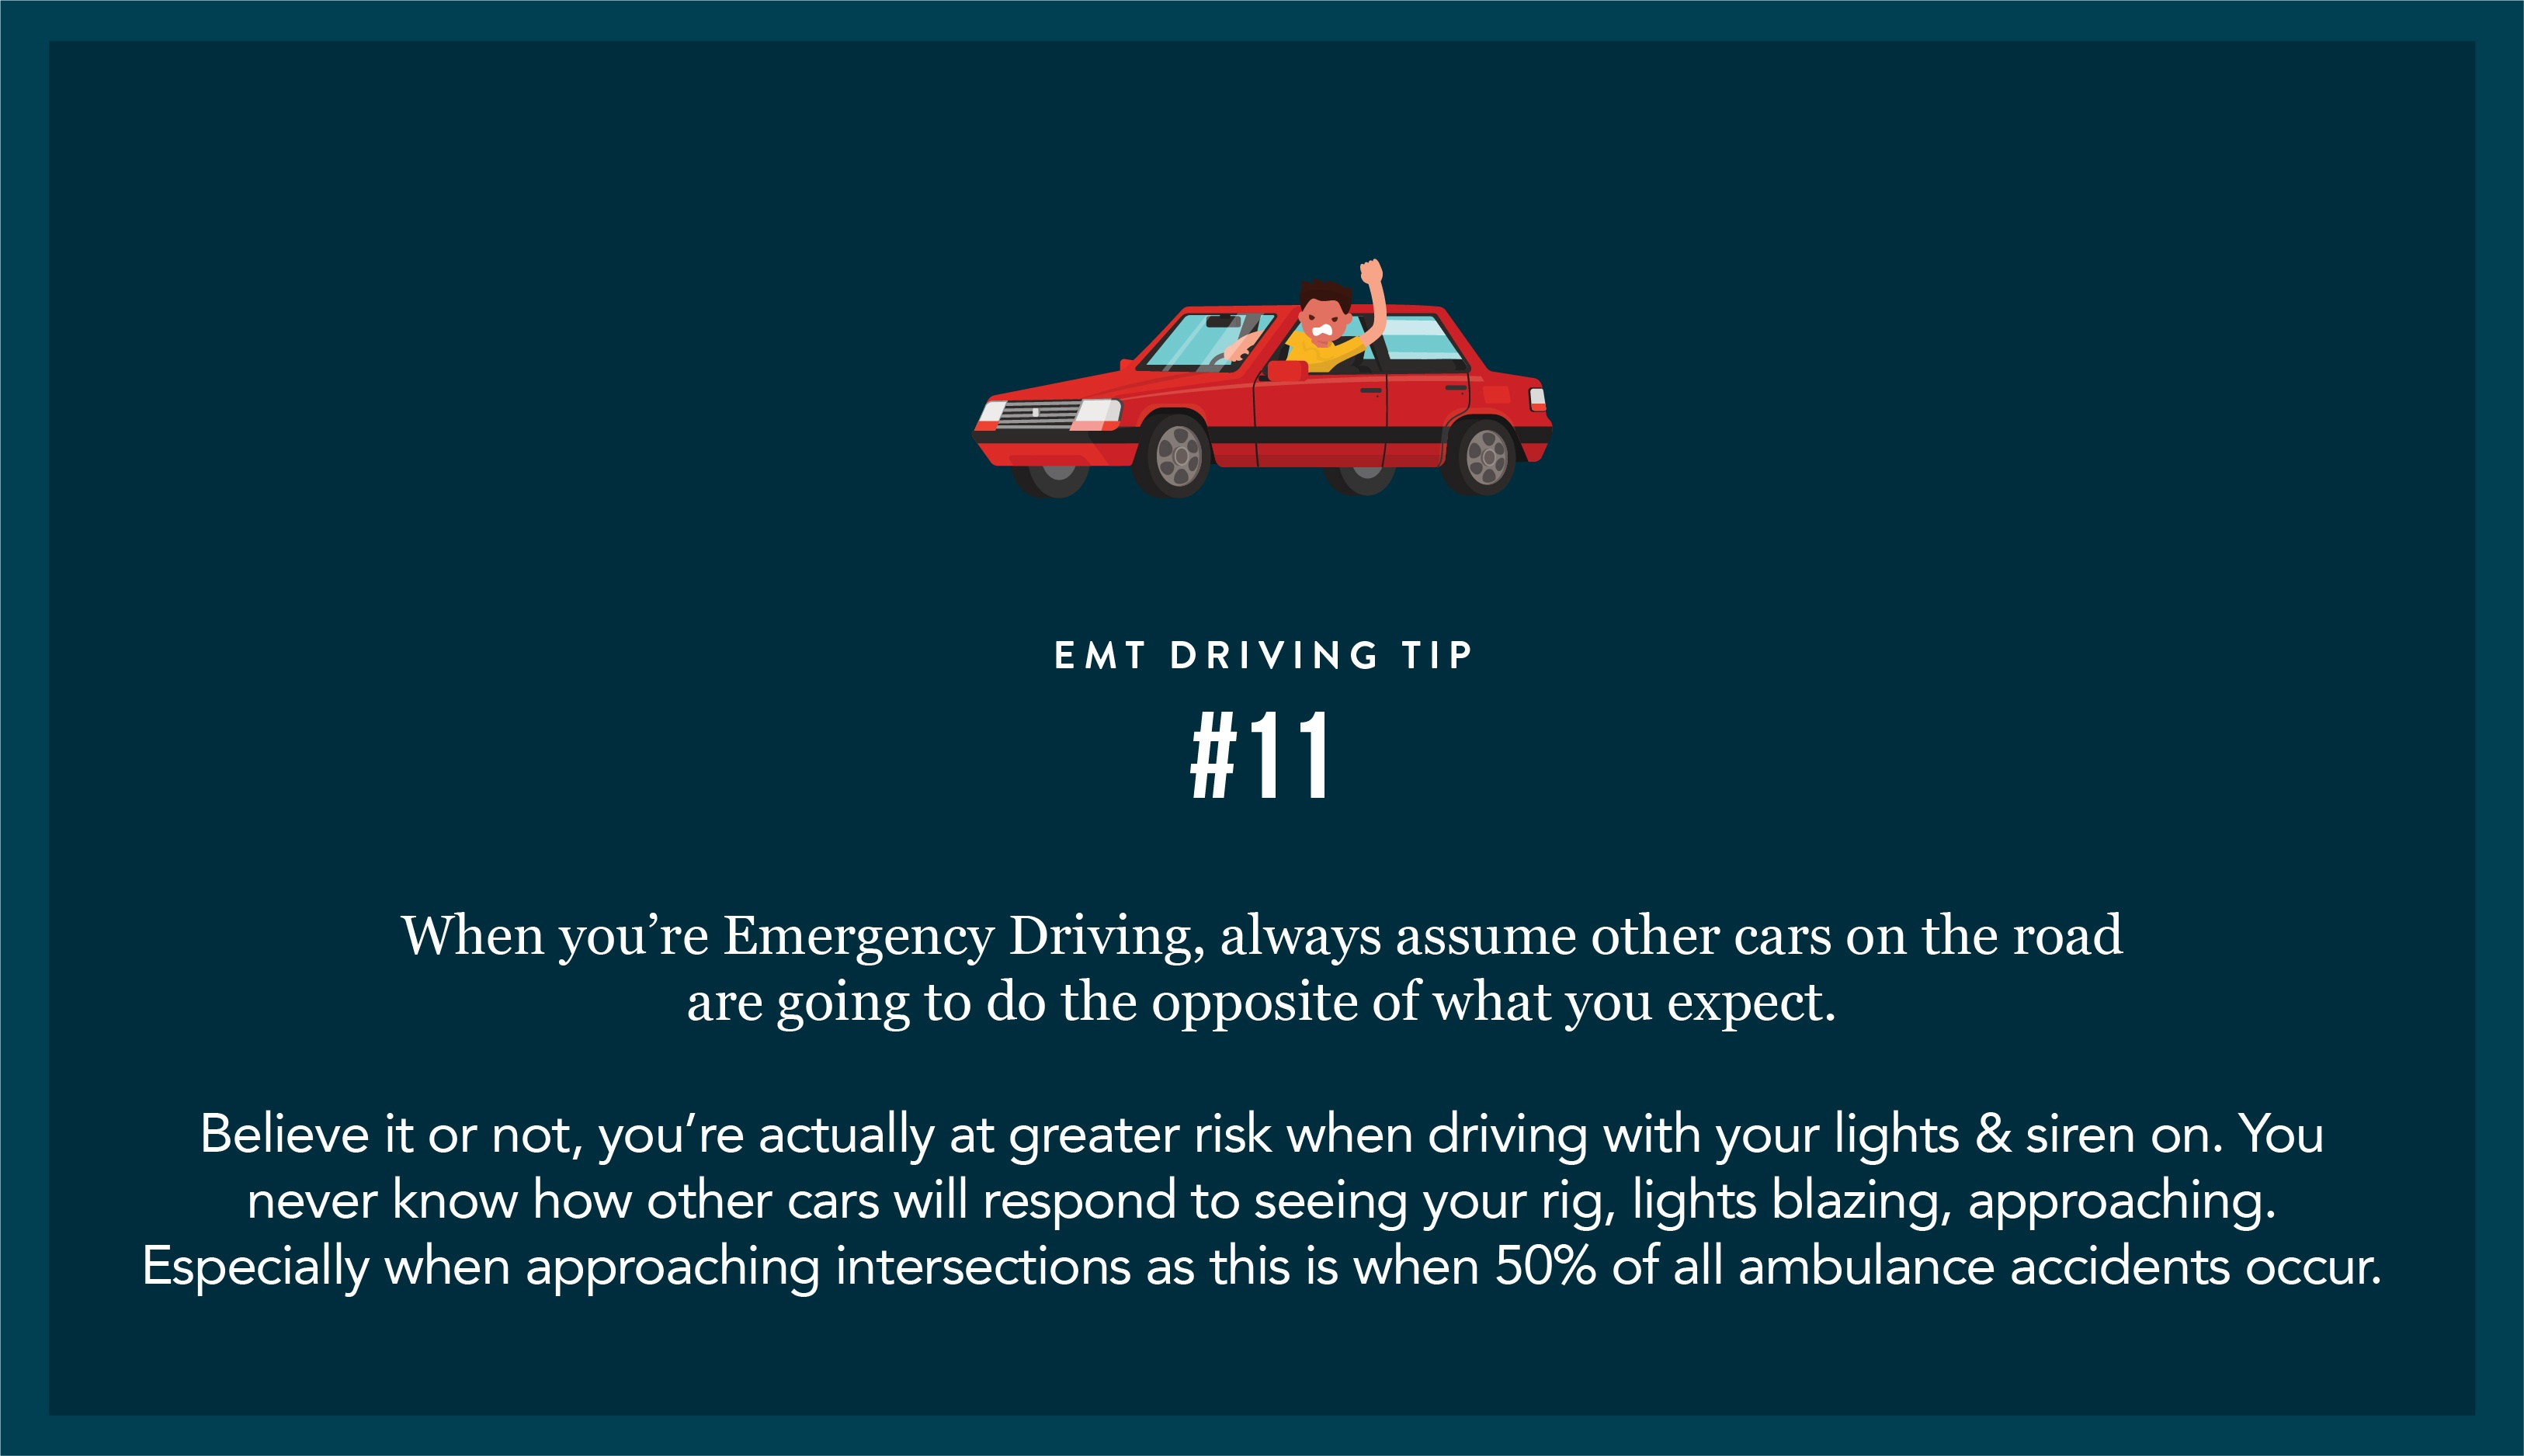 Driving Tips_WIDE-11.jpg